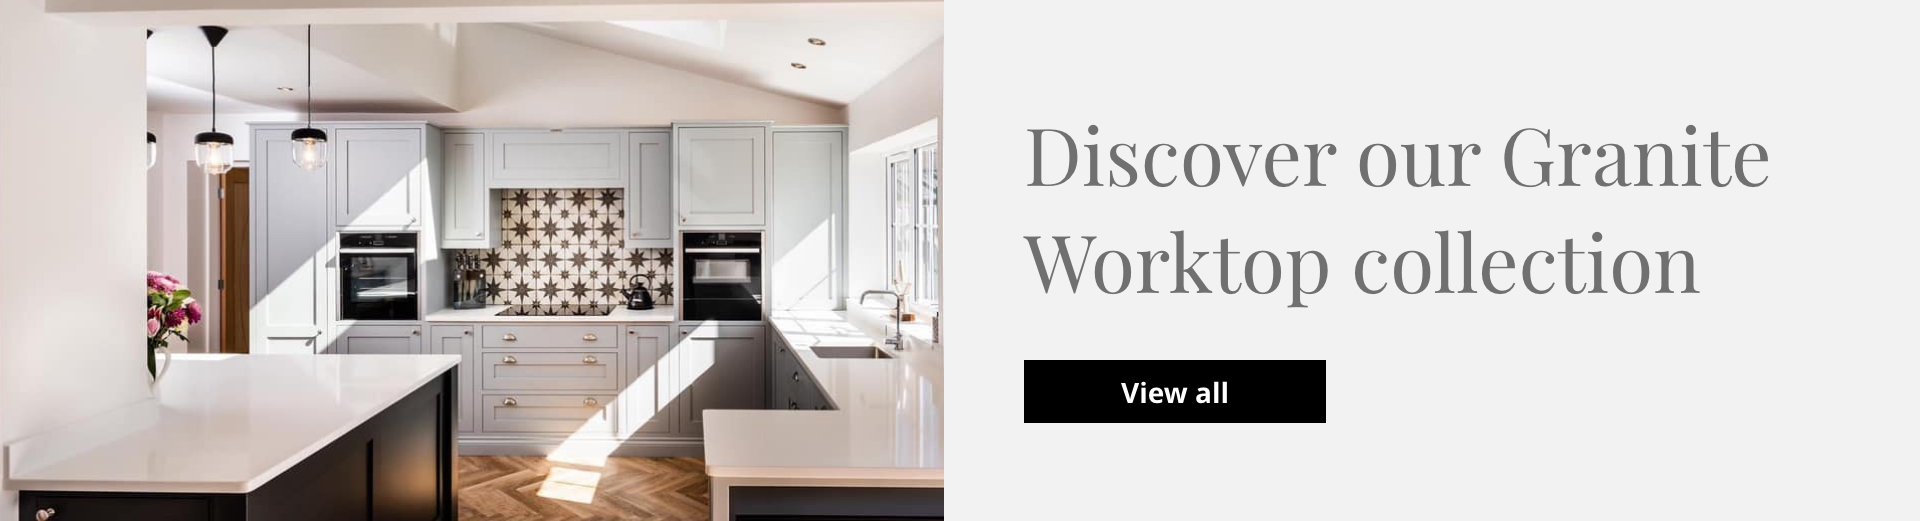 Discover our granite worktop collection